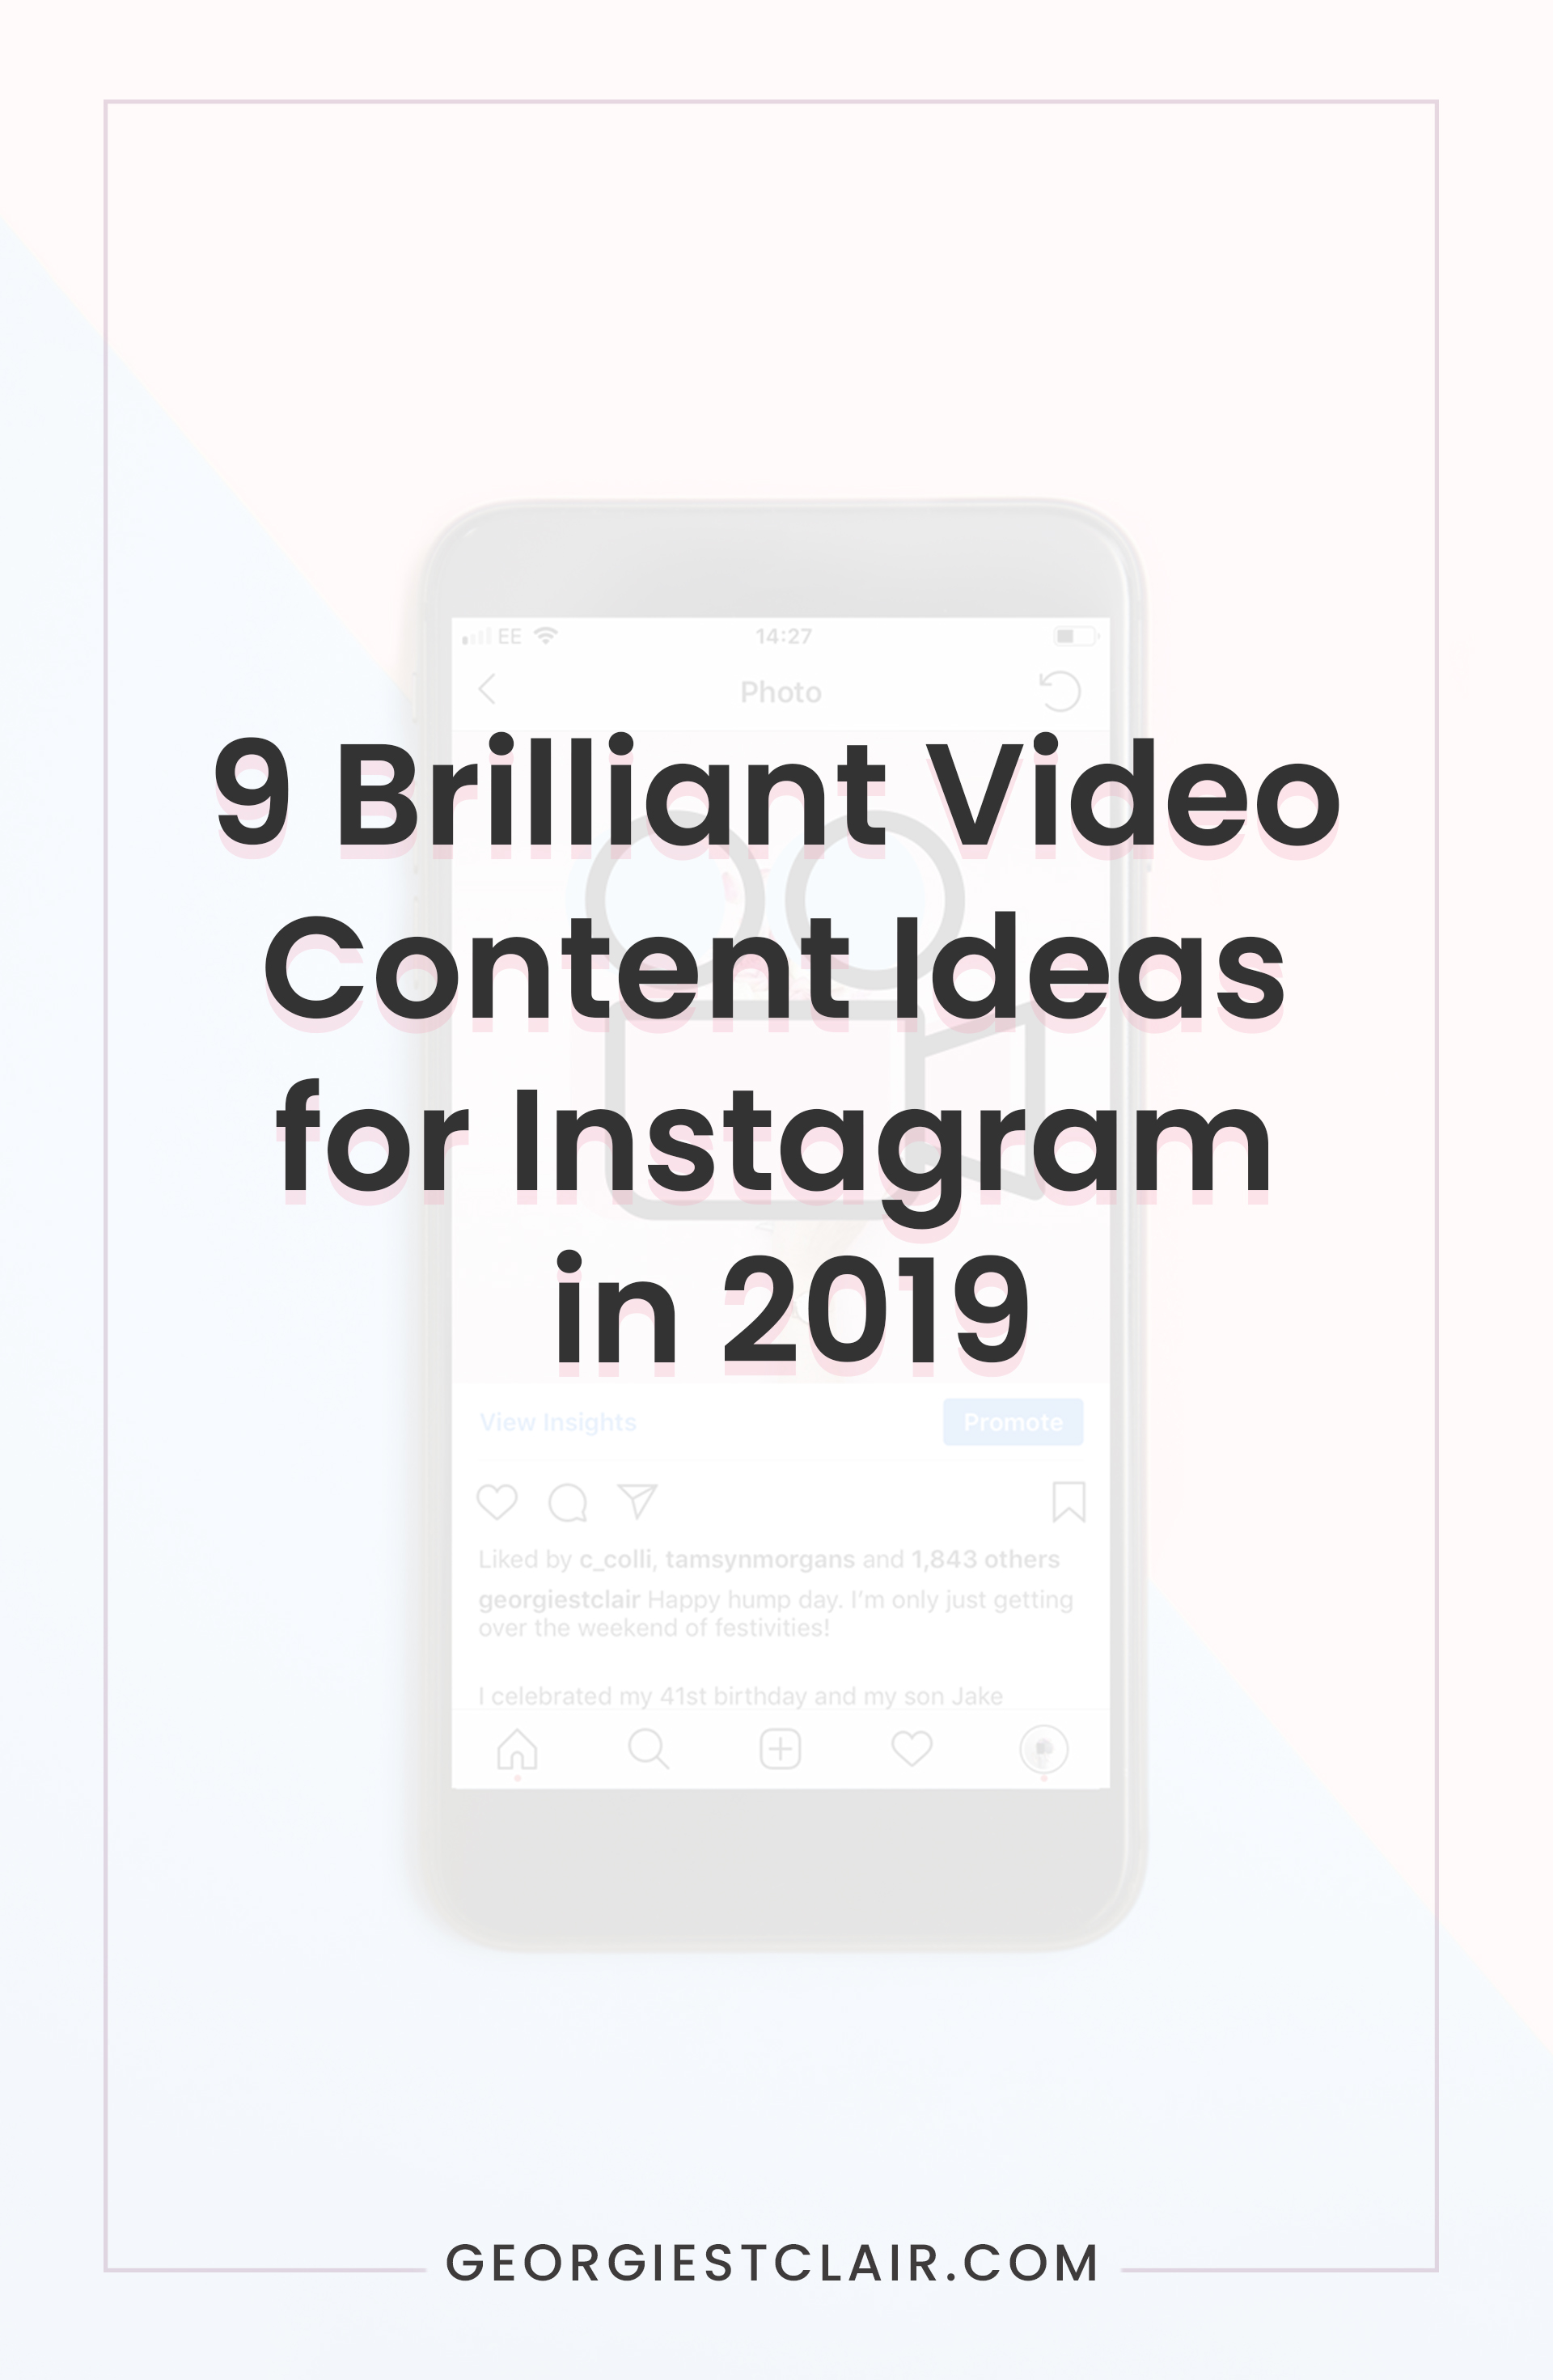 9 Brilliant Video Content Ideas for Instagram | Georgie St Clair